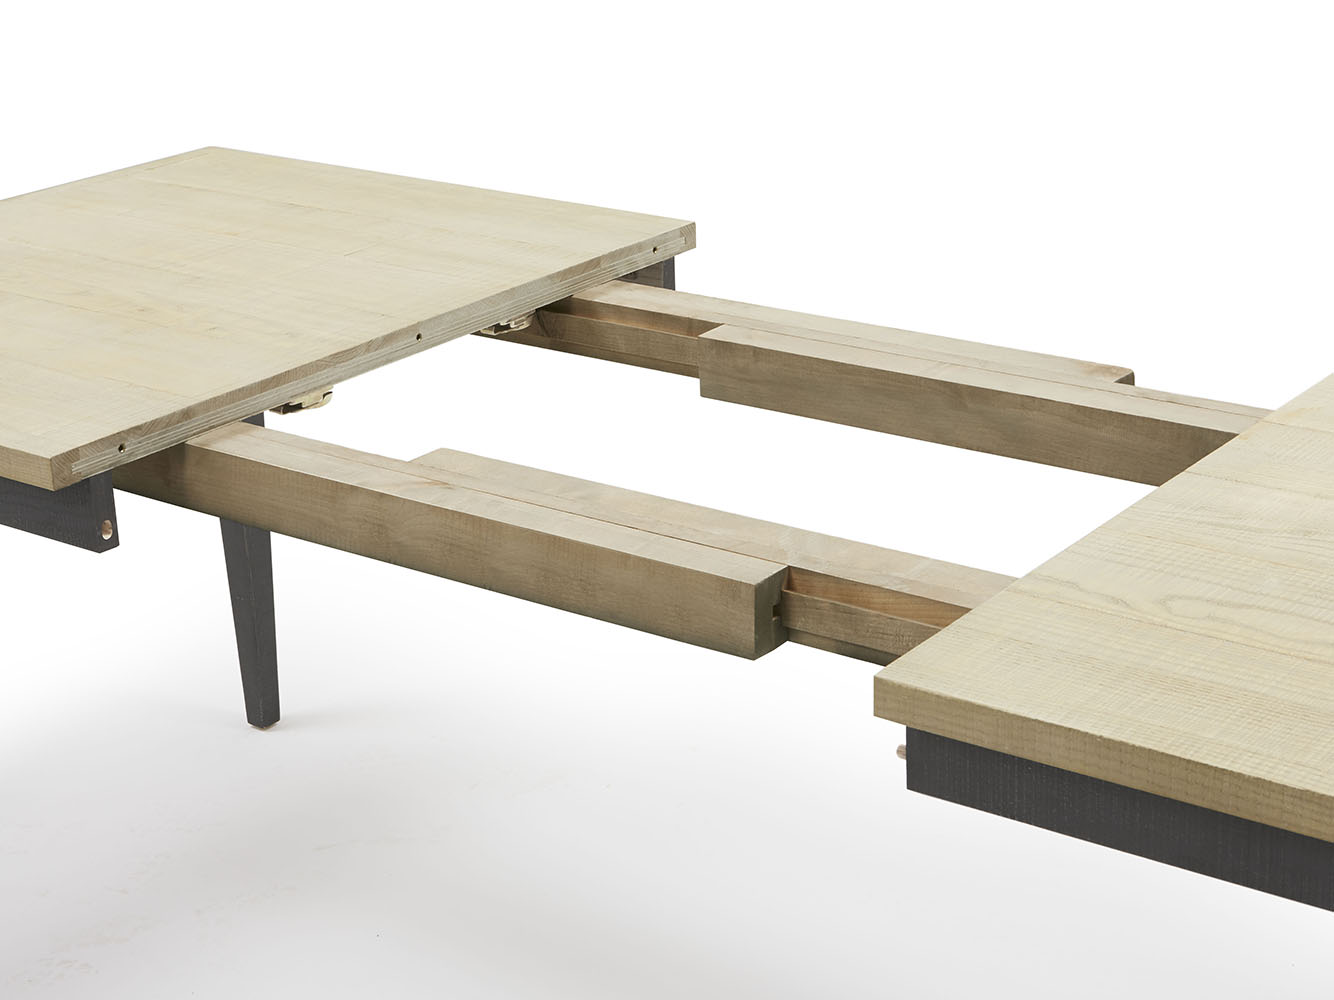 Kernel kitchen table - extending detail